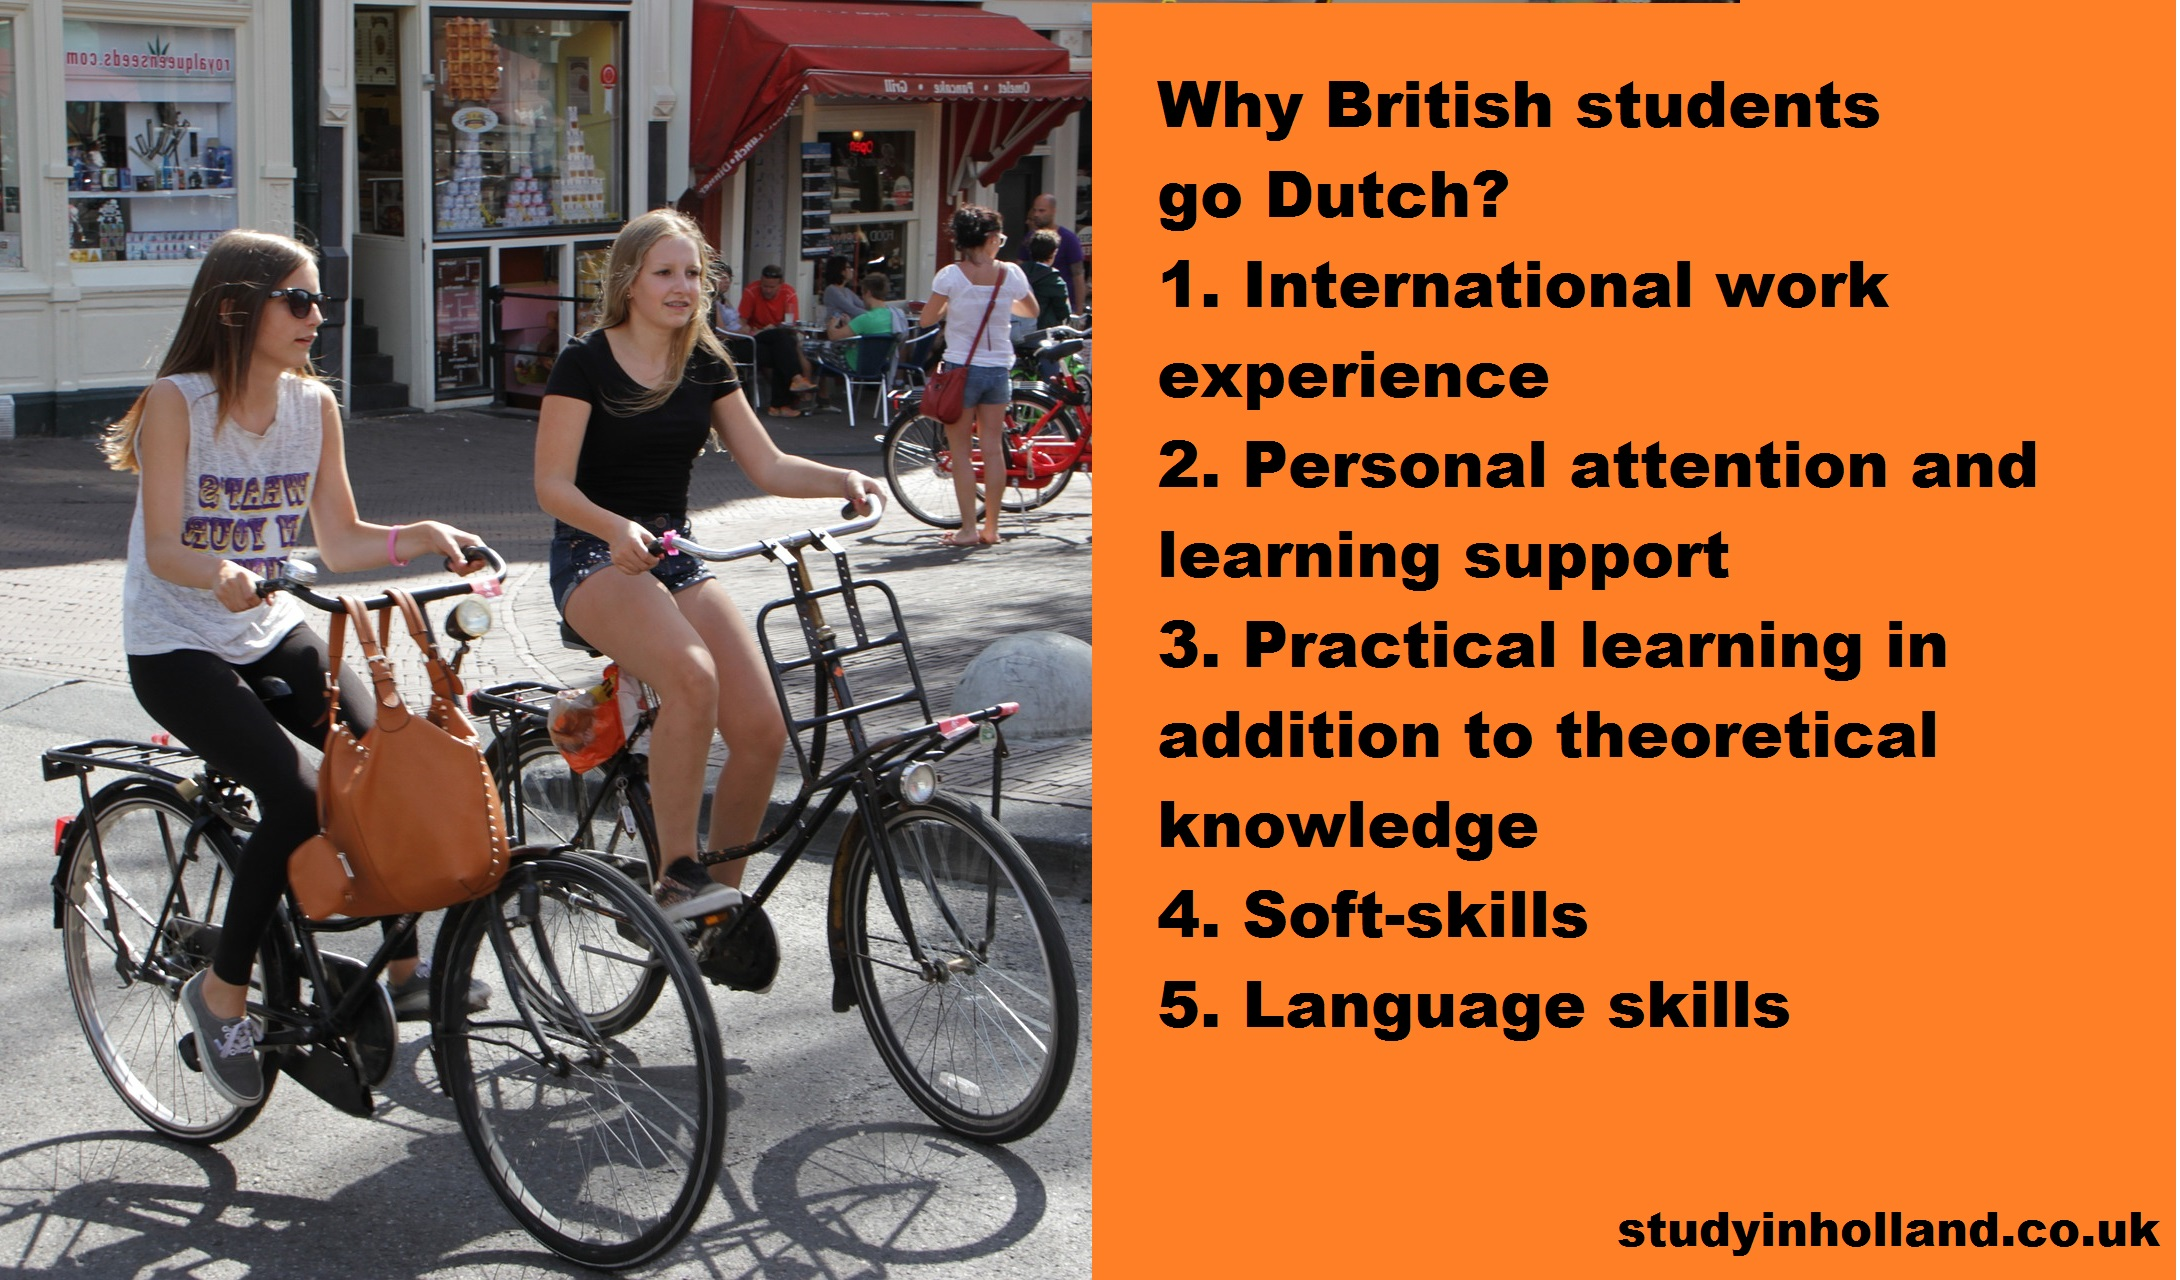 Study in Holland UK students